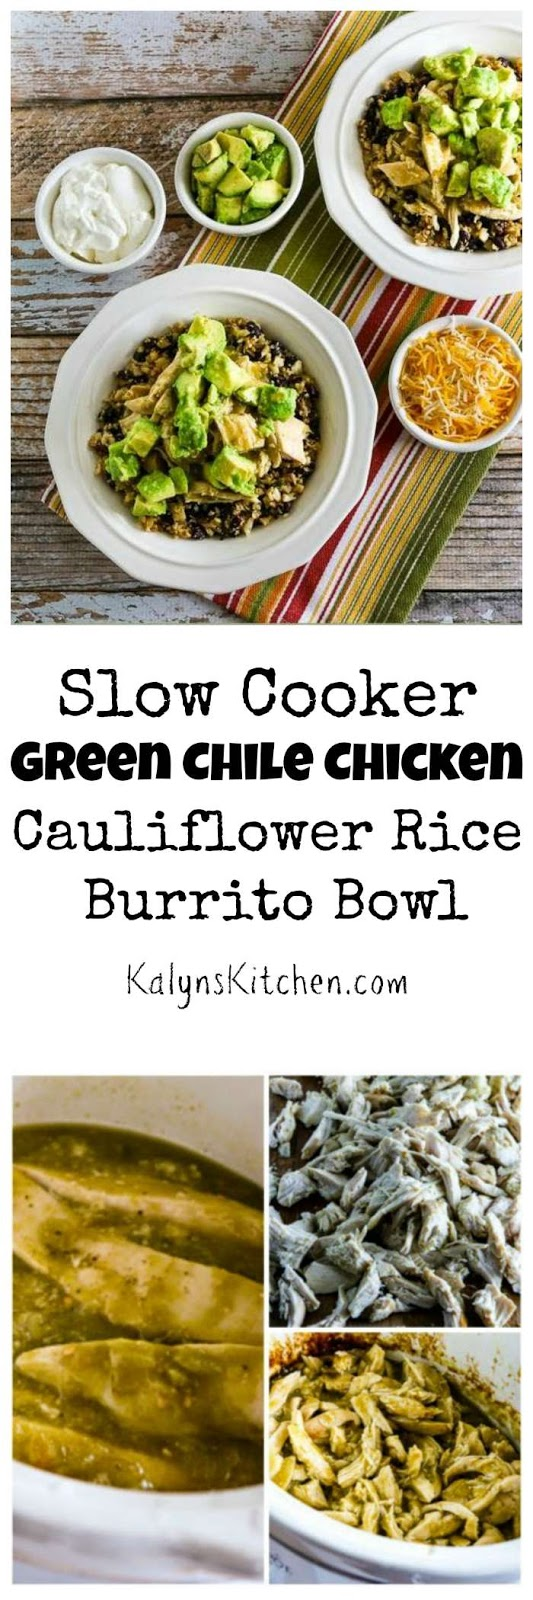 Kalyn's Kitchen®: Slow Cooker Green Chile Chicken Cauliflower Rice ...